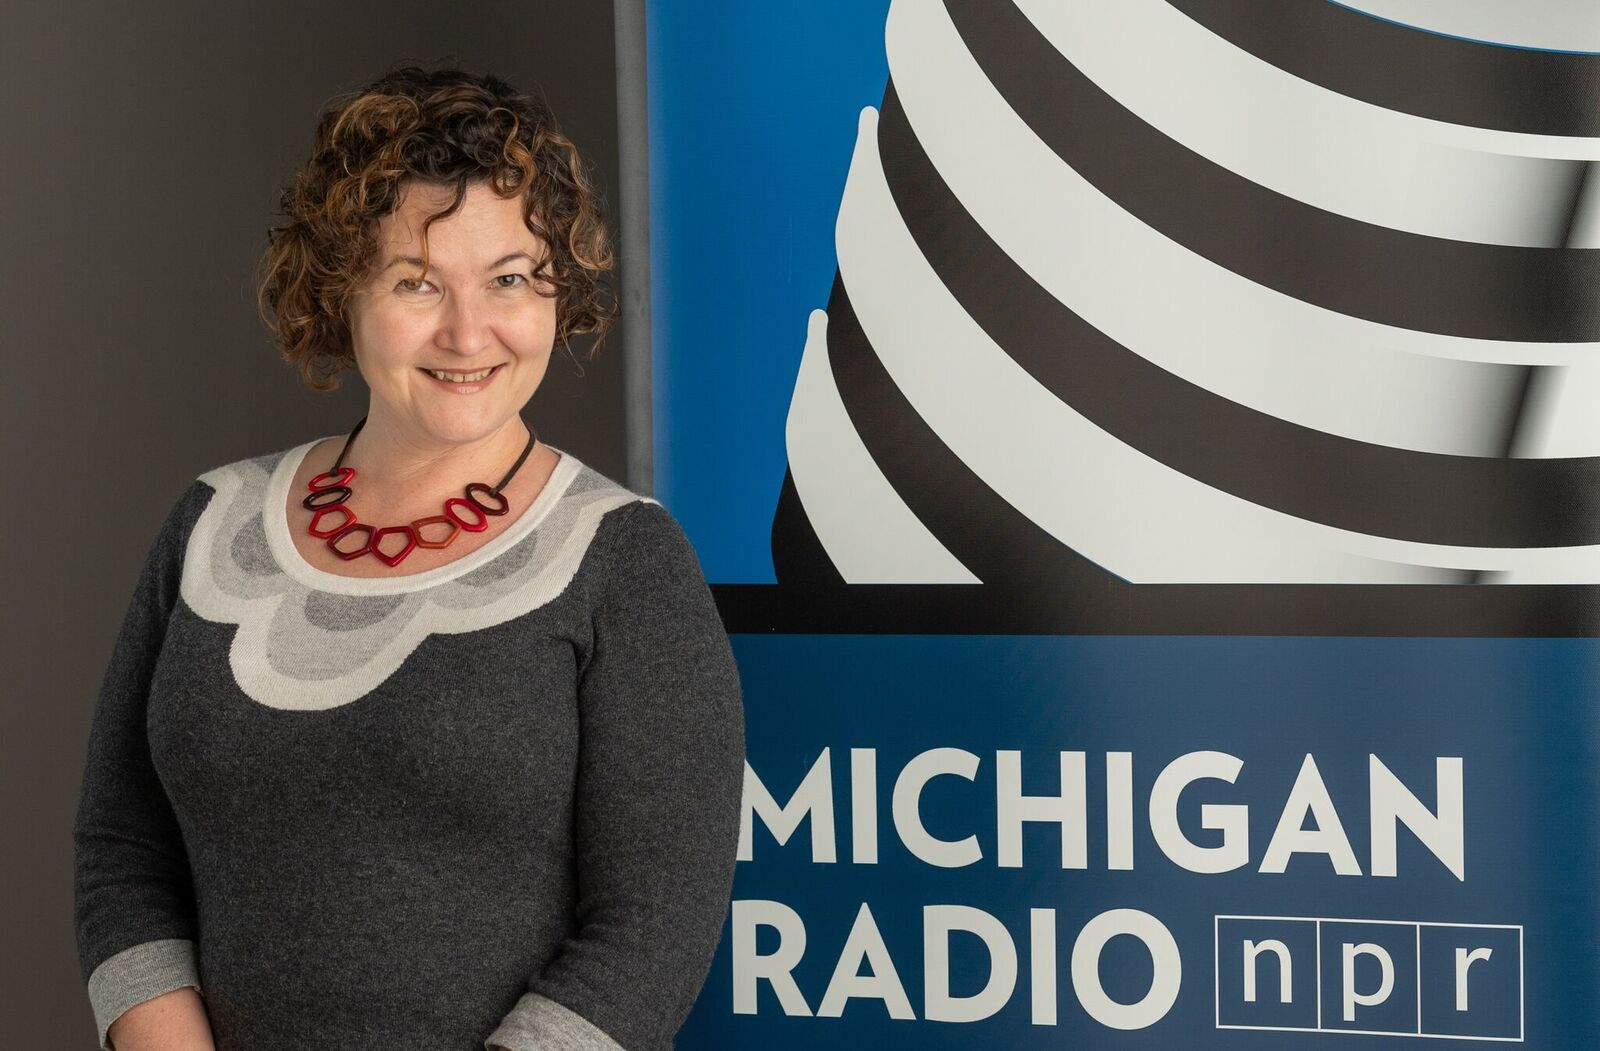 April Baer Joins Michigan Radio as New Host of Stateside